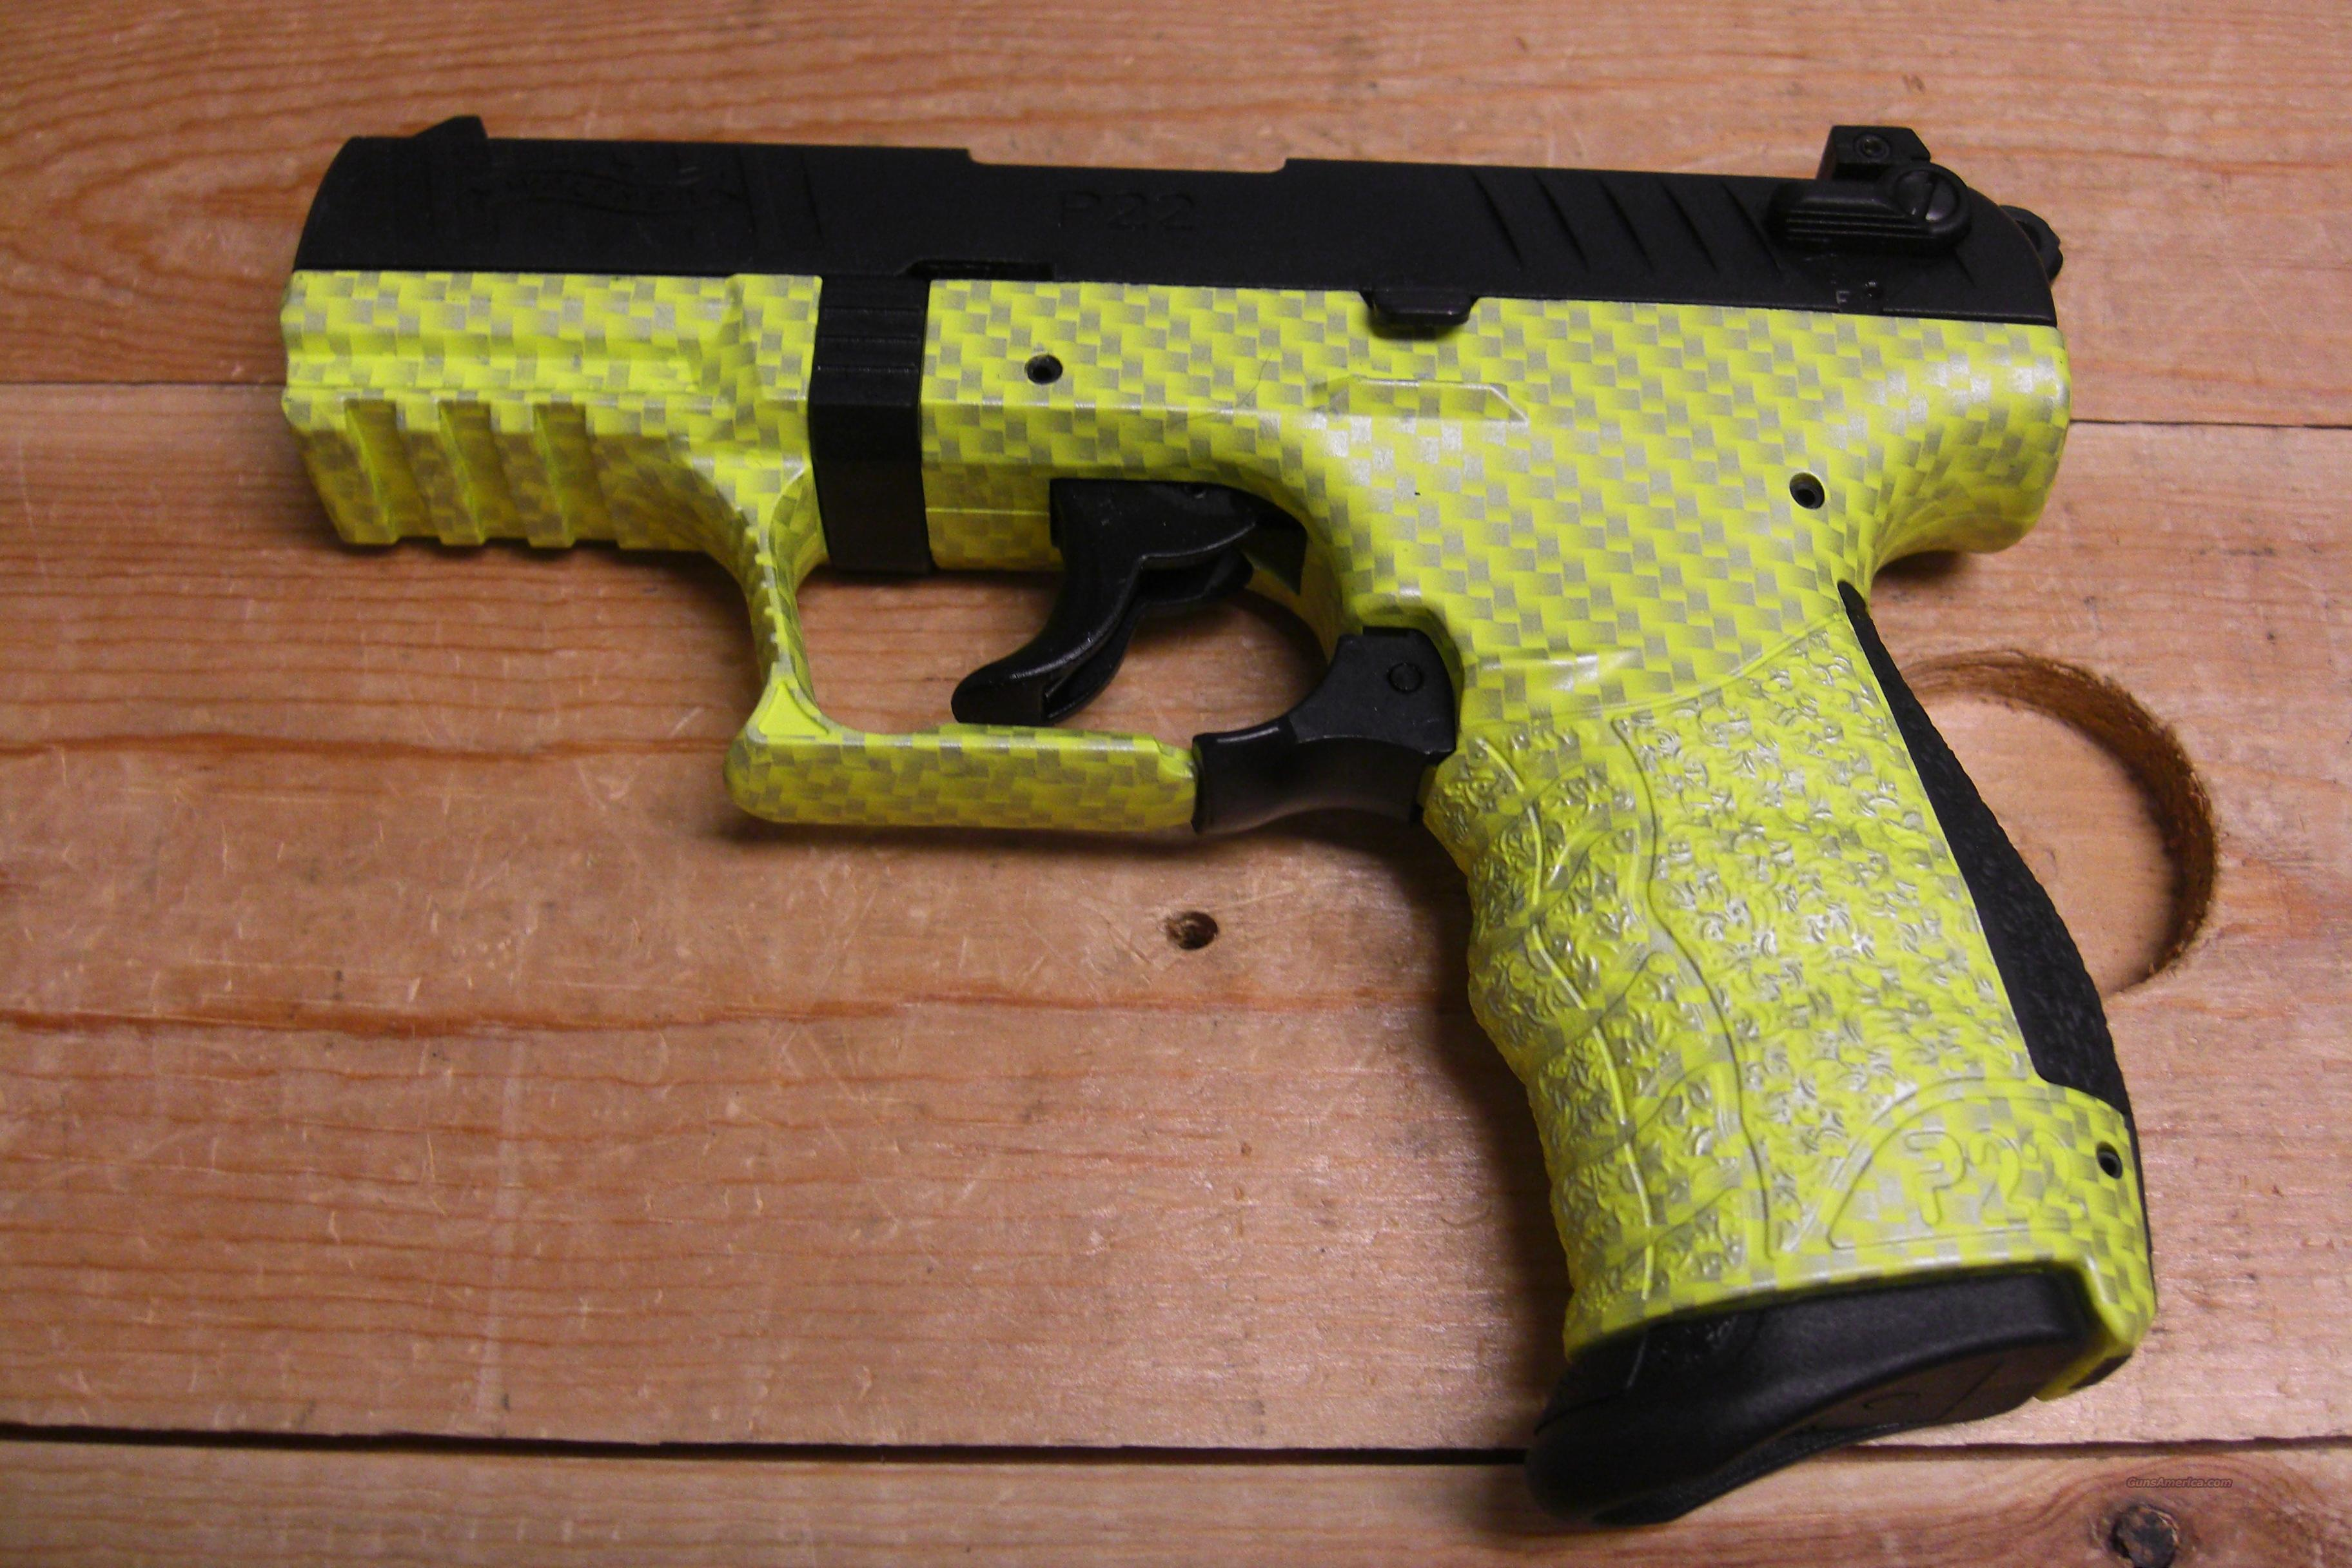 P22 w/yellow carbon fiber print frame  Guns > Pistols > Walther Pistols > Post WWII > Target Pistols